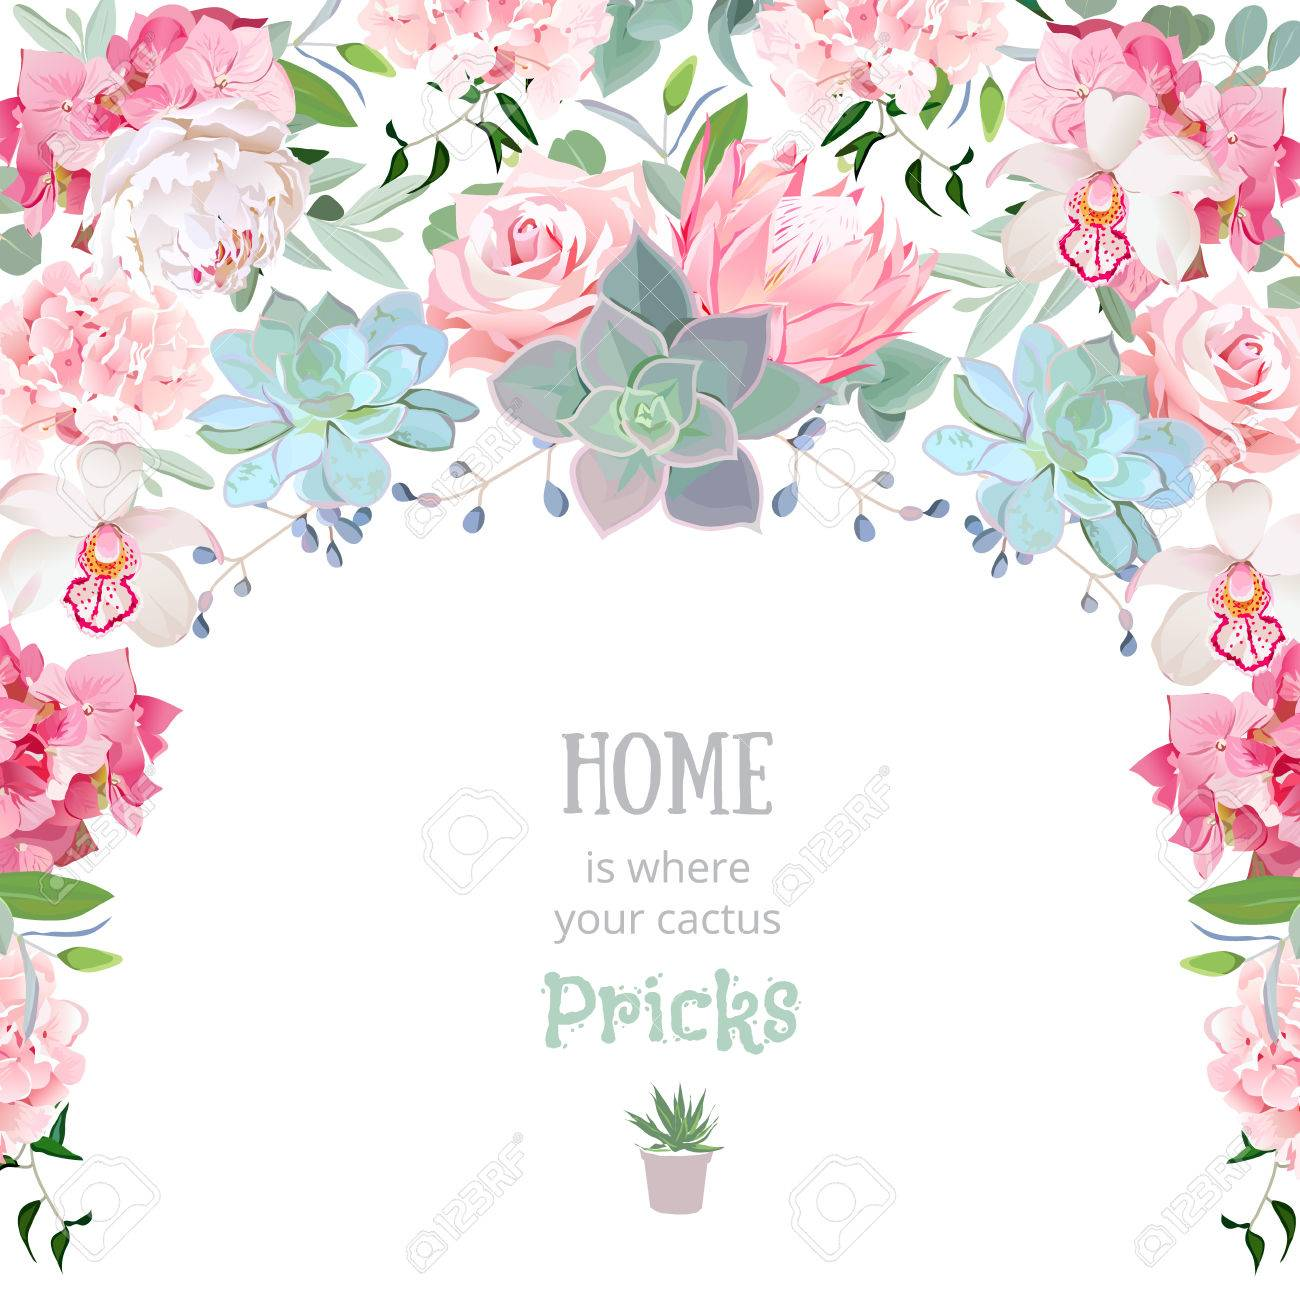 Semicircle garland frame with succulents, protea, rose, peony, orchid, echeveria, hydrangea, green plants. Cute wedding floral vector design. - 66769398